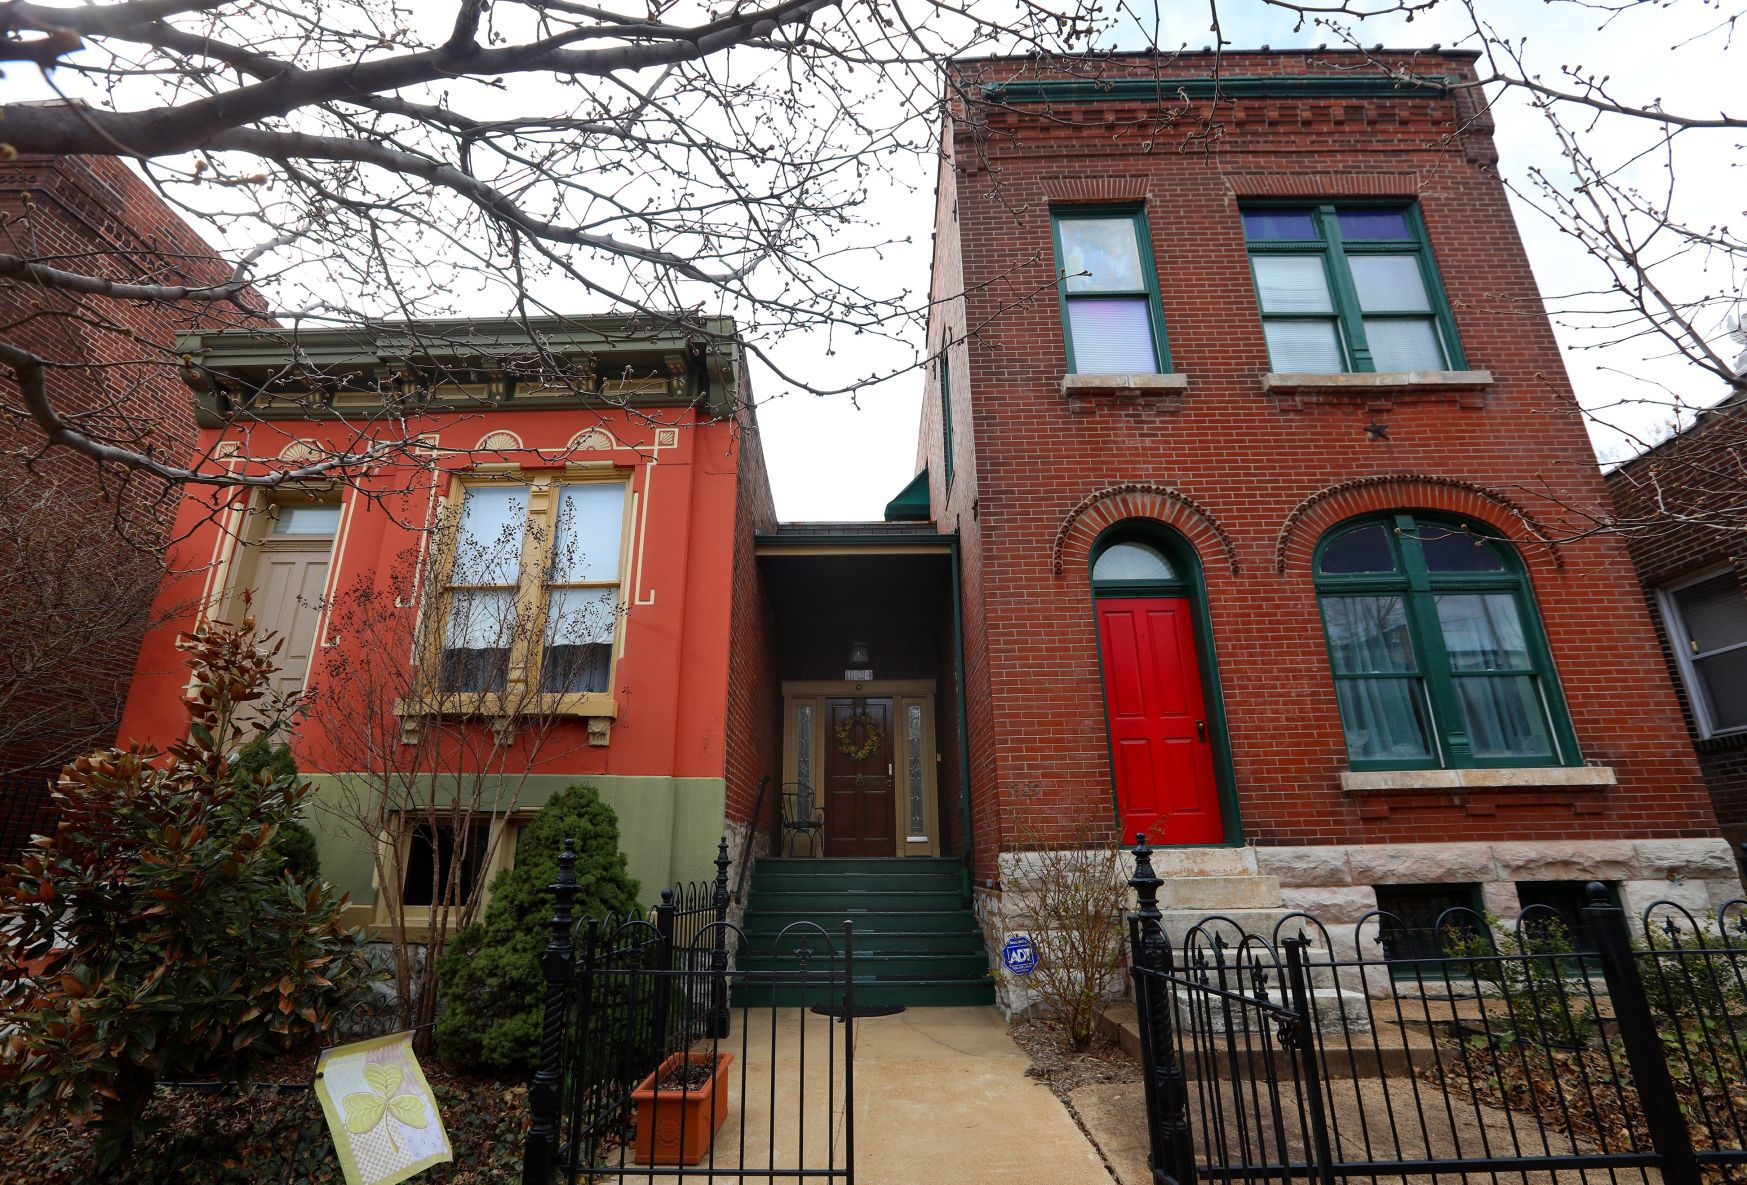 Two delinquent properties are combined and restored